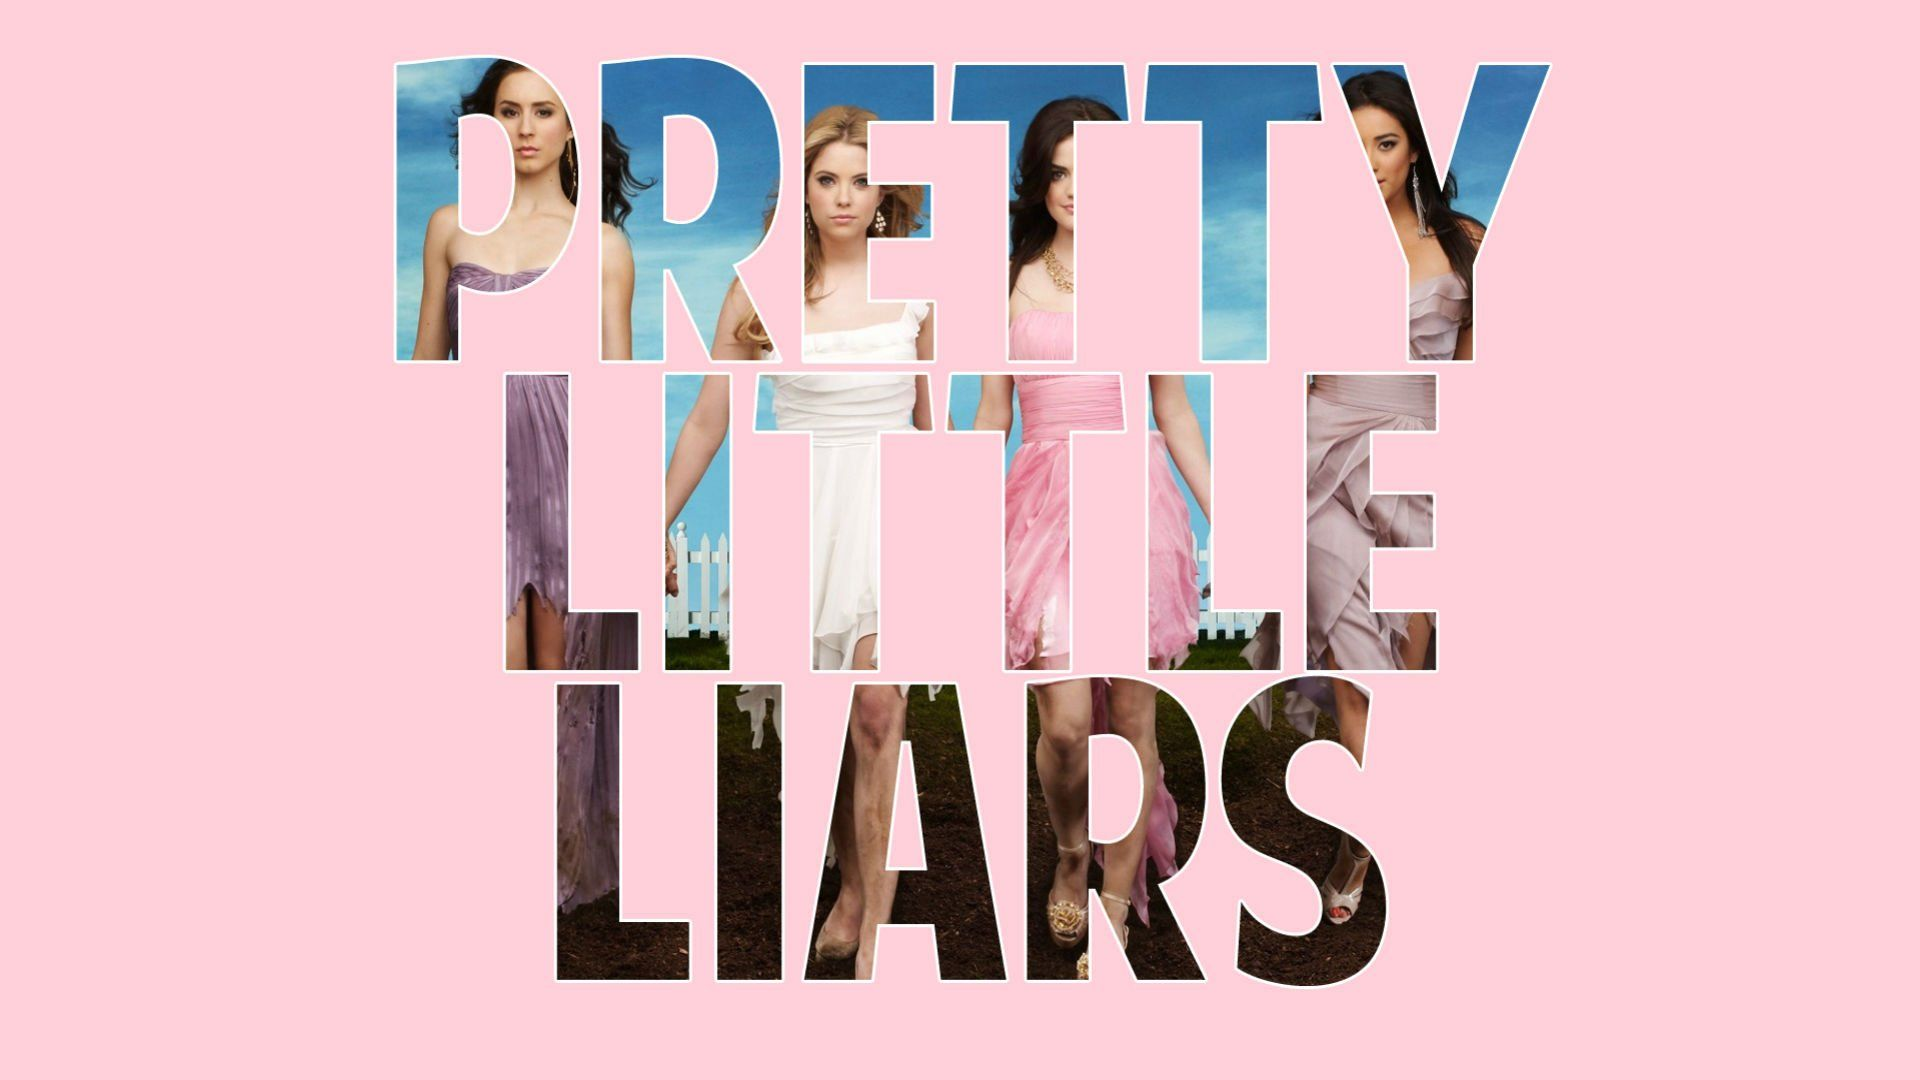 Pretty Little Liars Desktop Wallpapers Wallpapers Backgrounds Images Art Photos Pretty Little Liars Pretty Litle Liars Little Liars